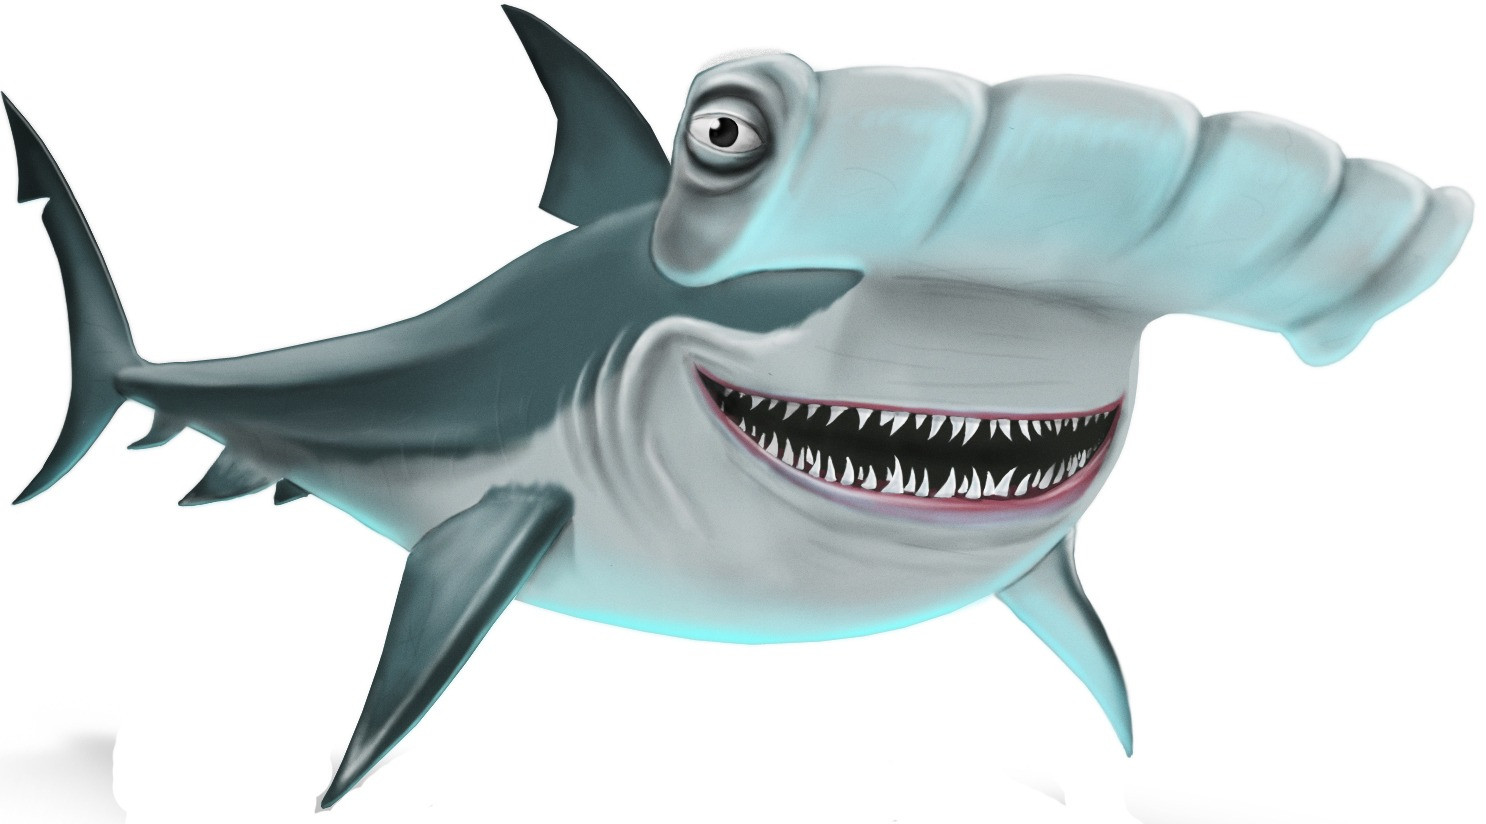 Hammerhead Shark Pictures For Kids